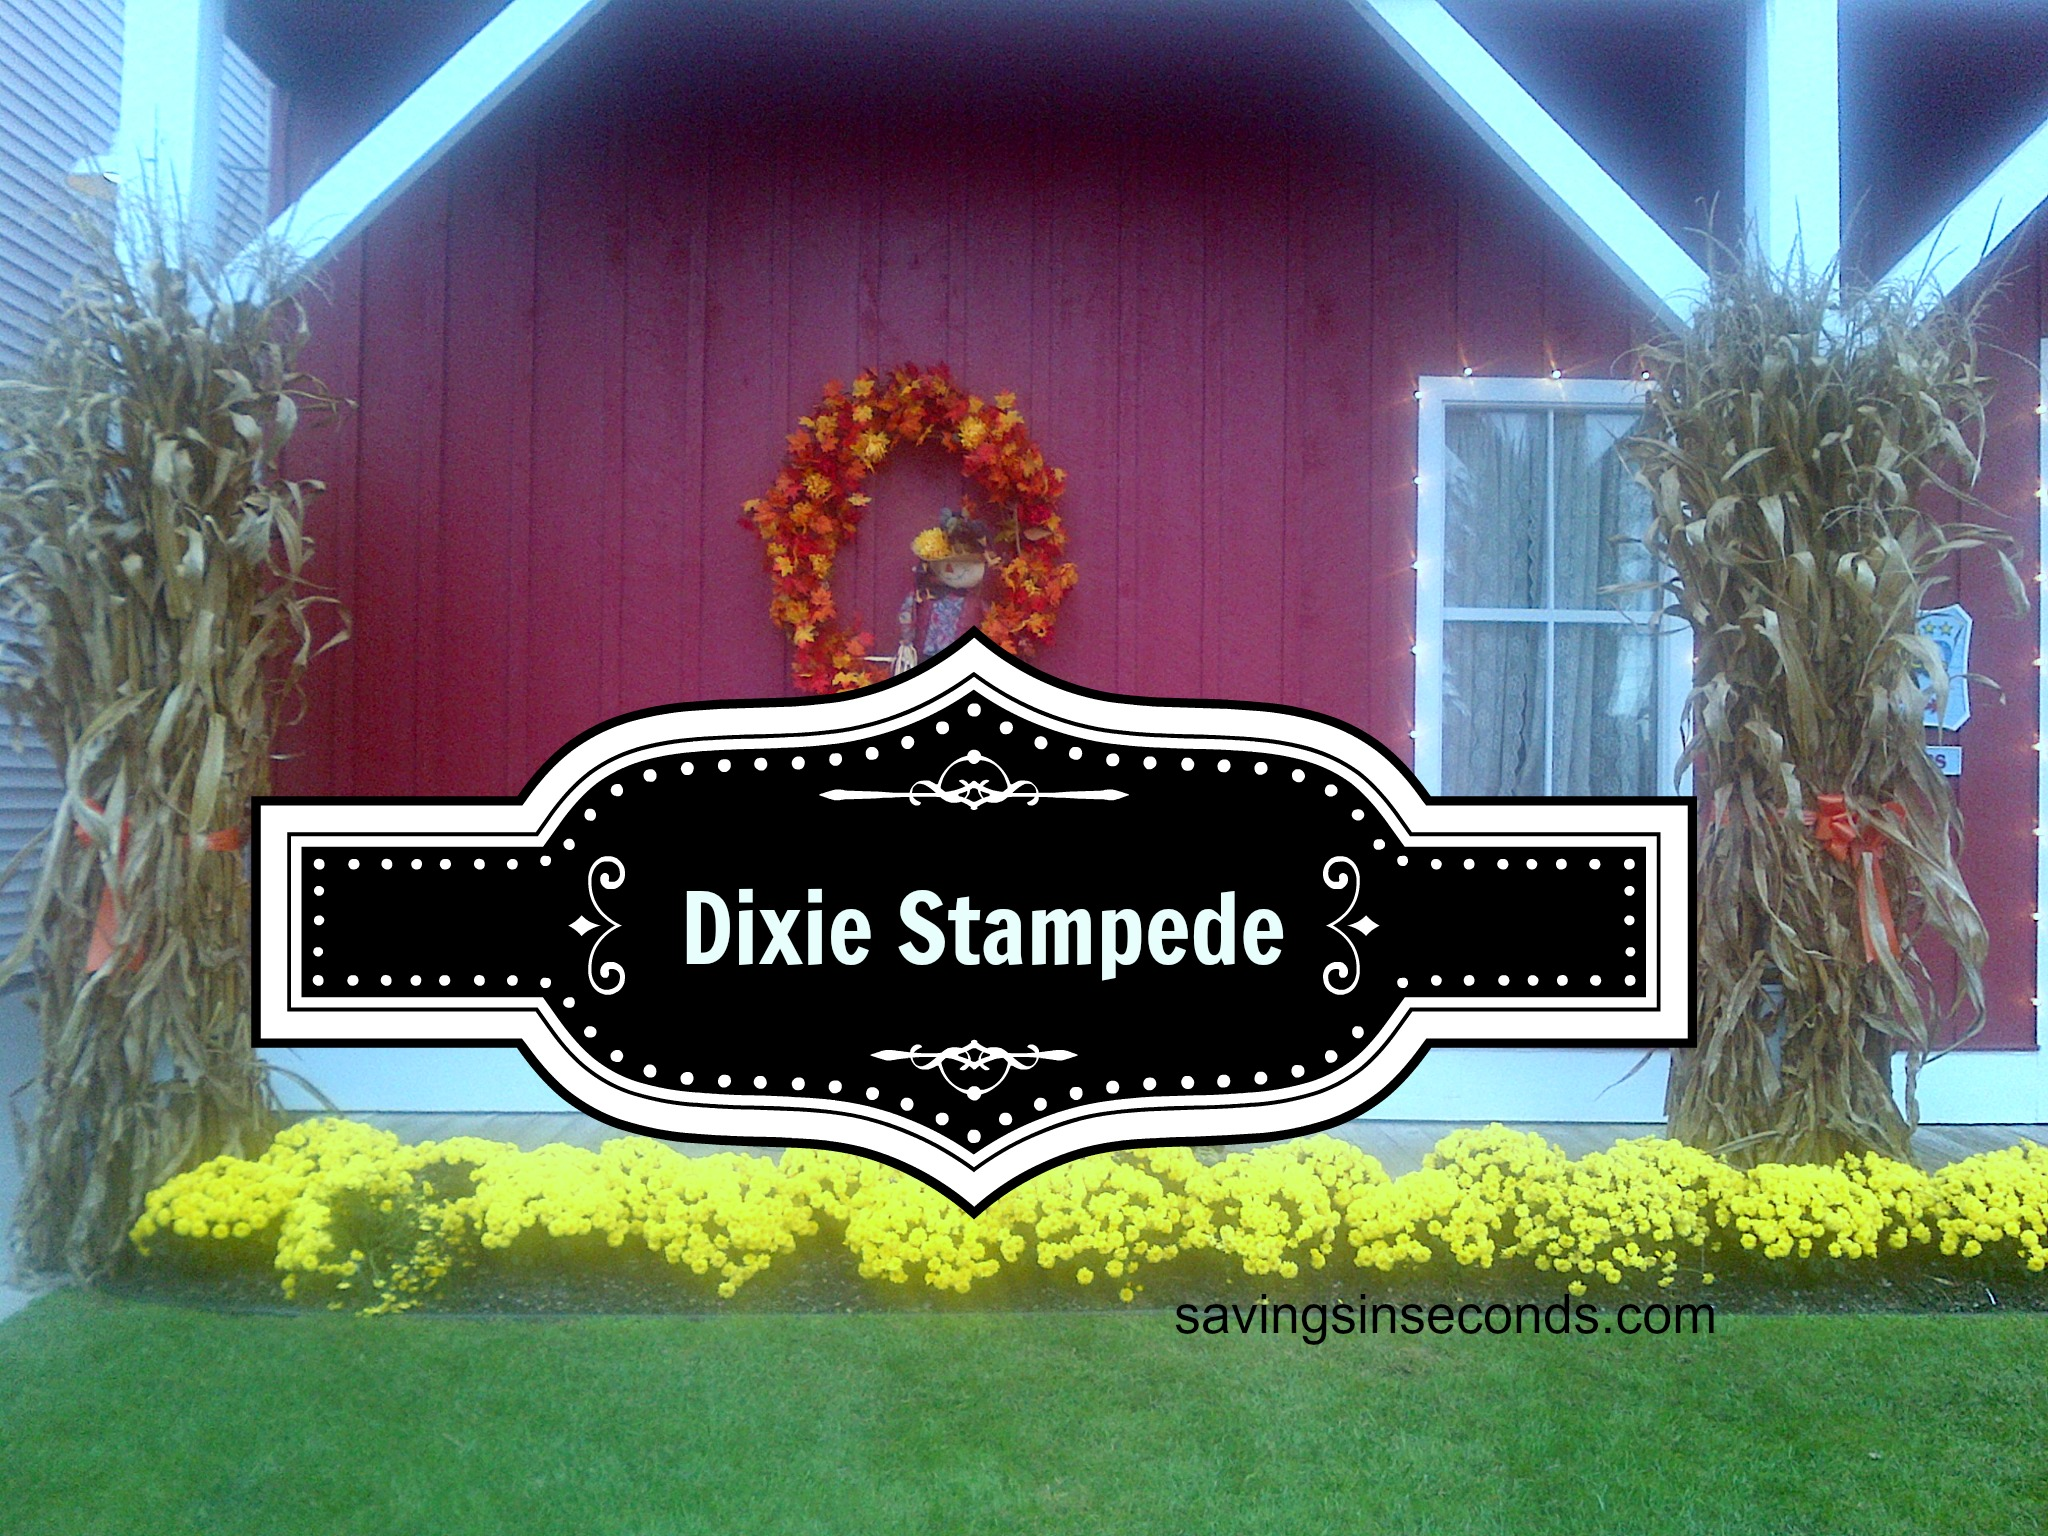 photograph relating to Dixie Stampede Coupons Printable titled Dixie stampede branson coupon codes codes / In which in direction of buy